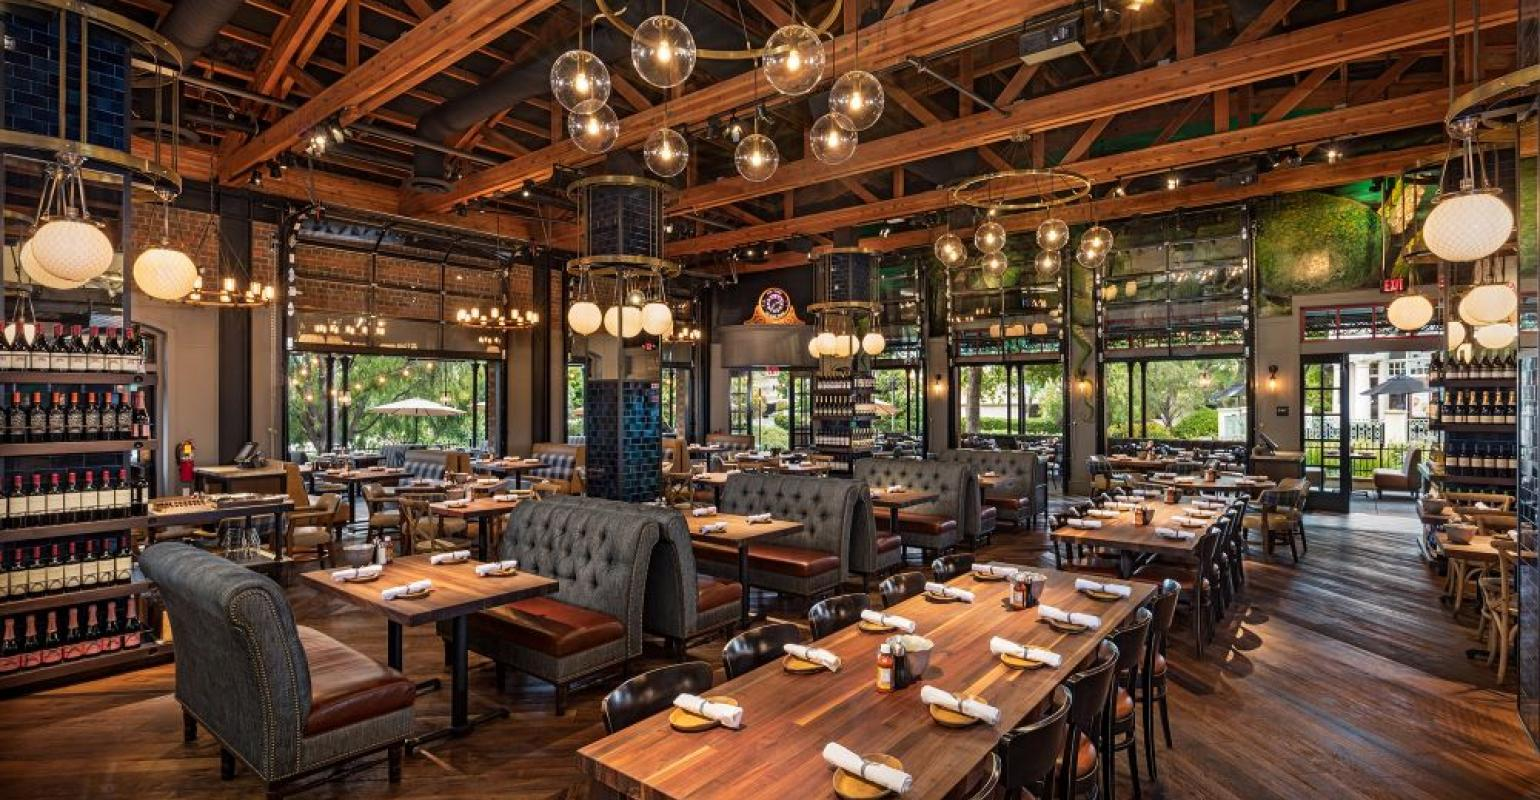 A 31 Year Old Seafood Concept Finds New Legs With Redesign Restaurant Hospitality